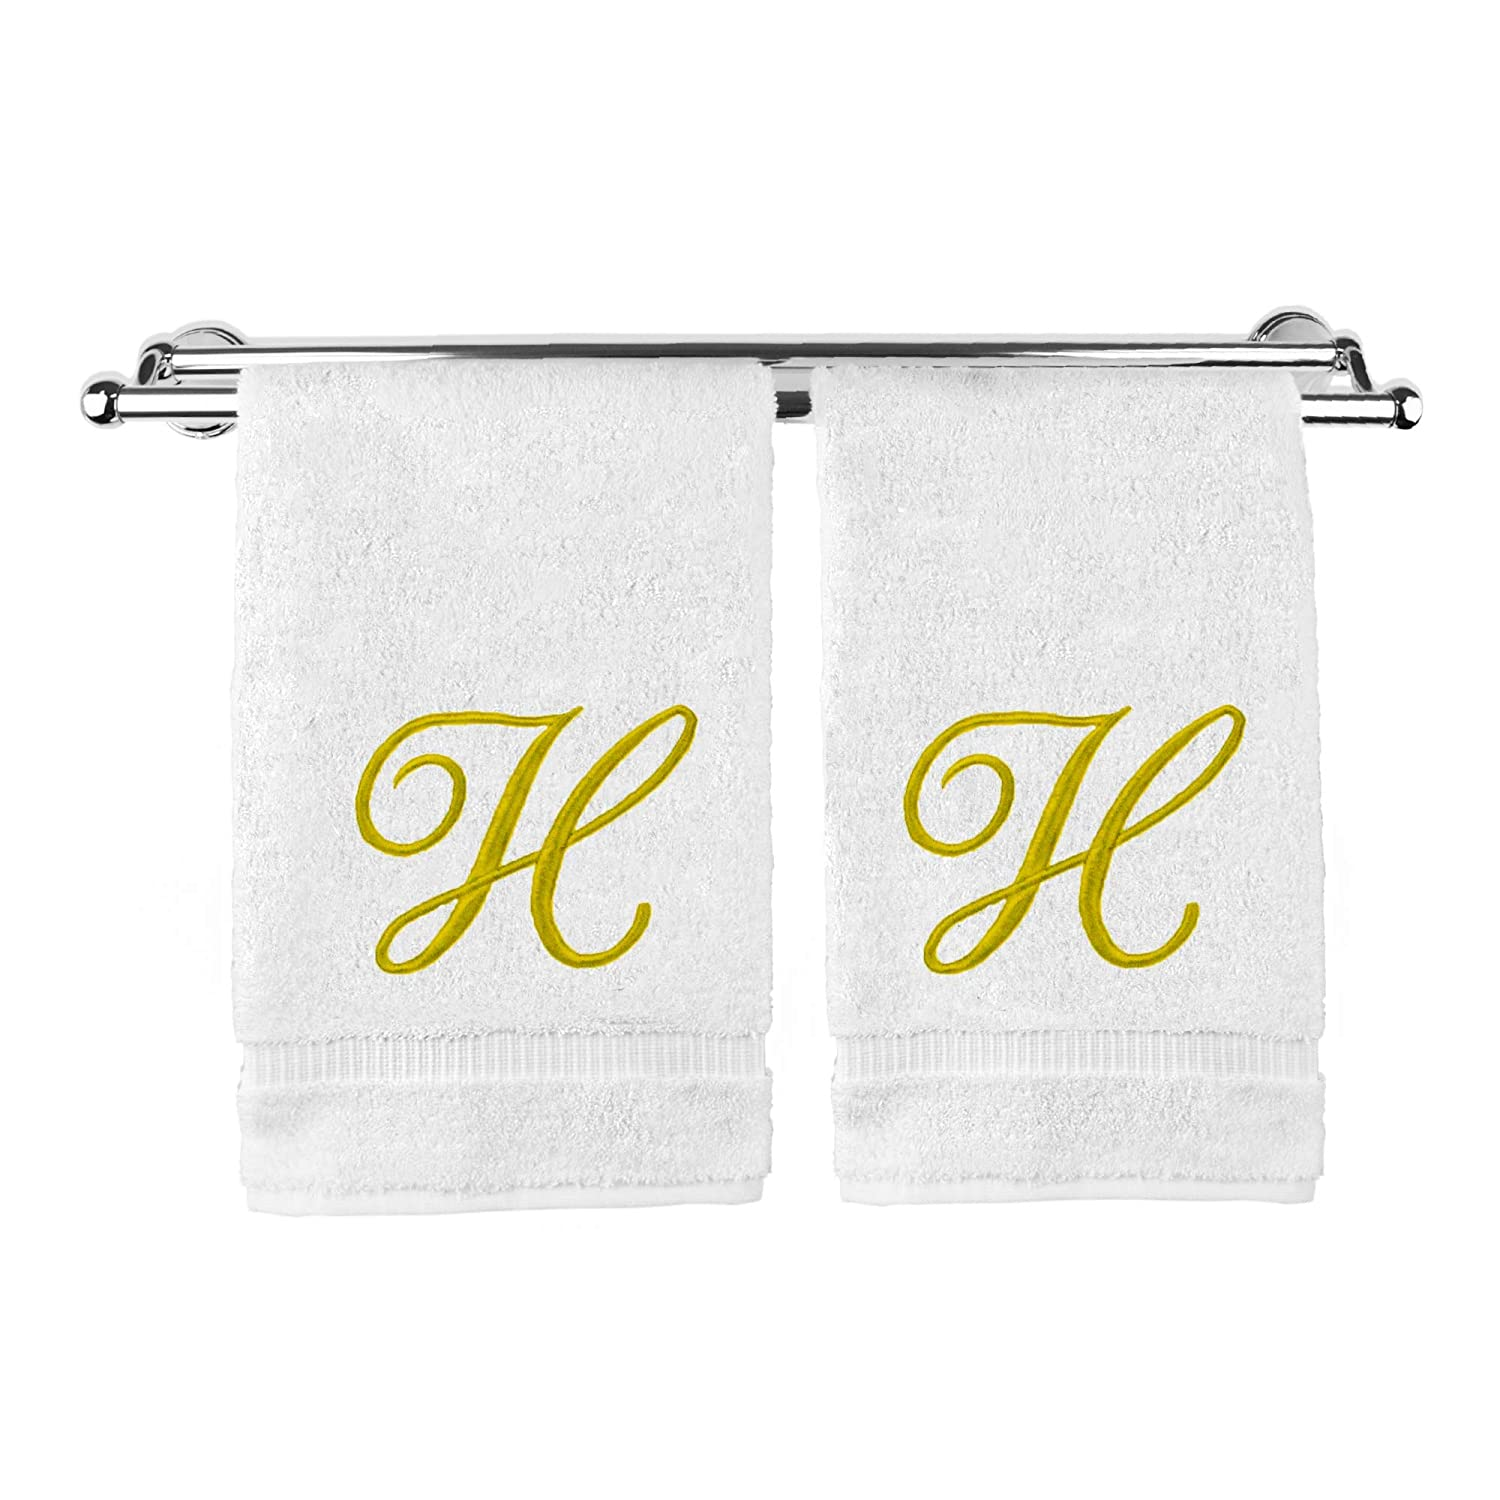 Monogrammed Hand Towel, Personalized Gift, 16 x 30 Inches - Set of 2 - Gold Embroidered Towel - Extra Absorbent 100% Turkish Cotton- Soft Terry Finish - for Bathroom, Kitchen and Spa- Script H White